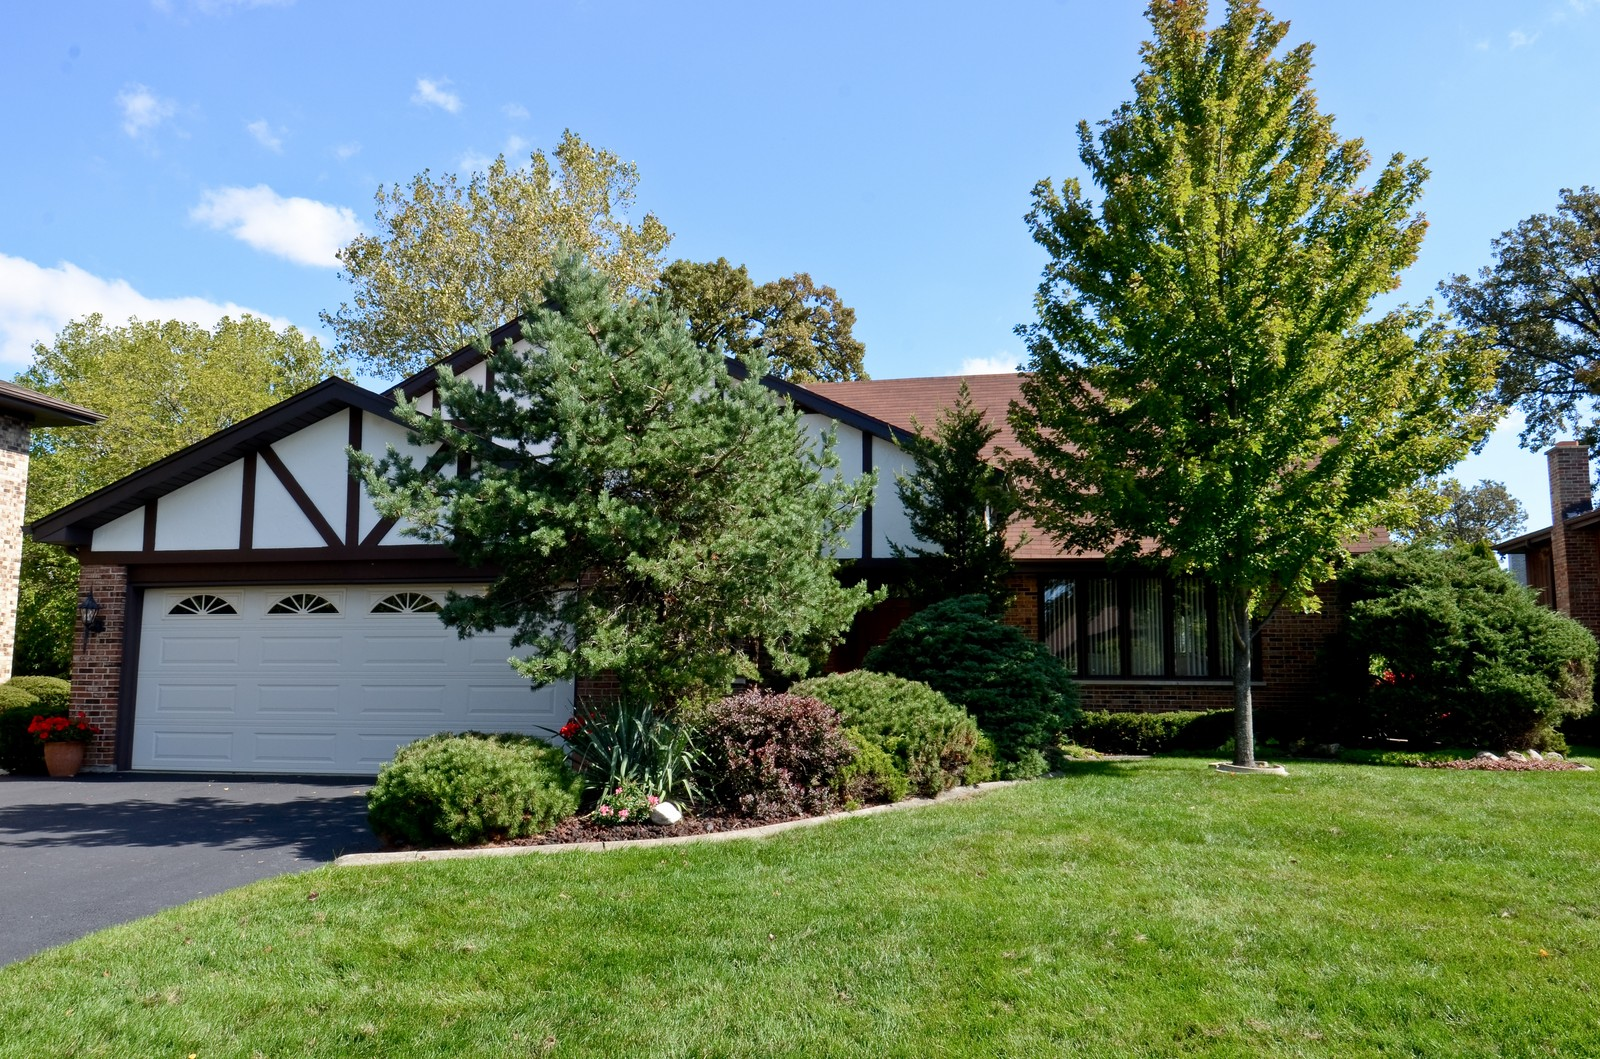 Real Estate Photography - 367 S Edgewood, Wood Dale, IL, 60191 - Front View